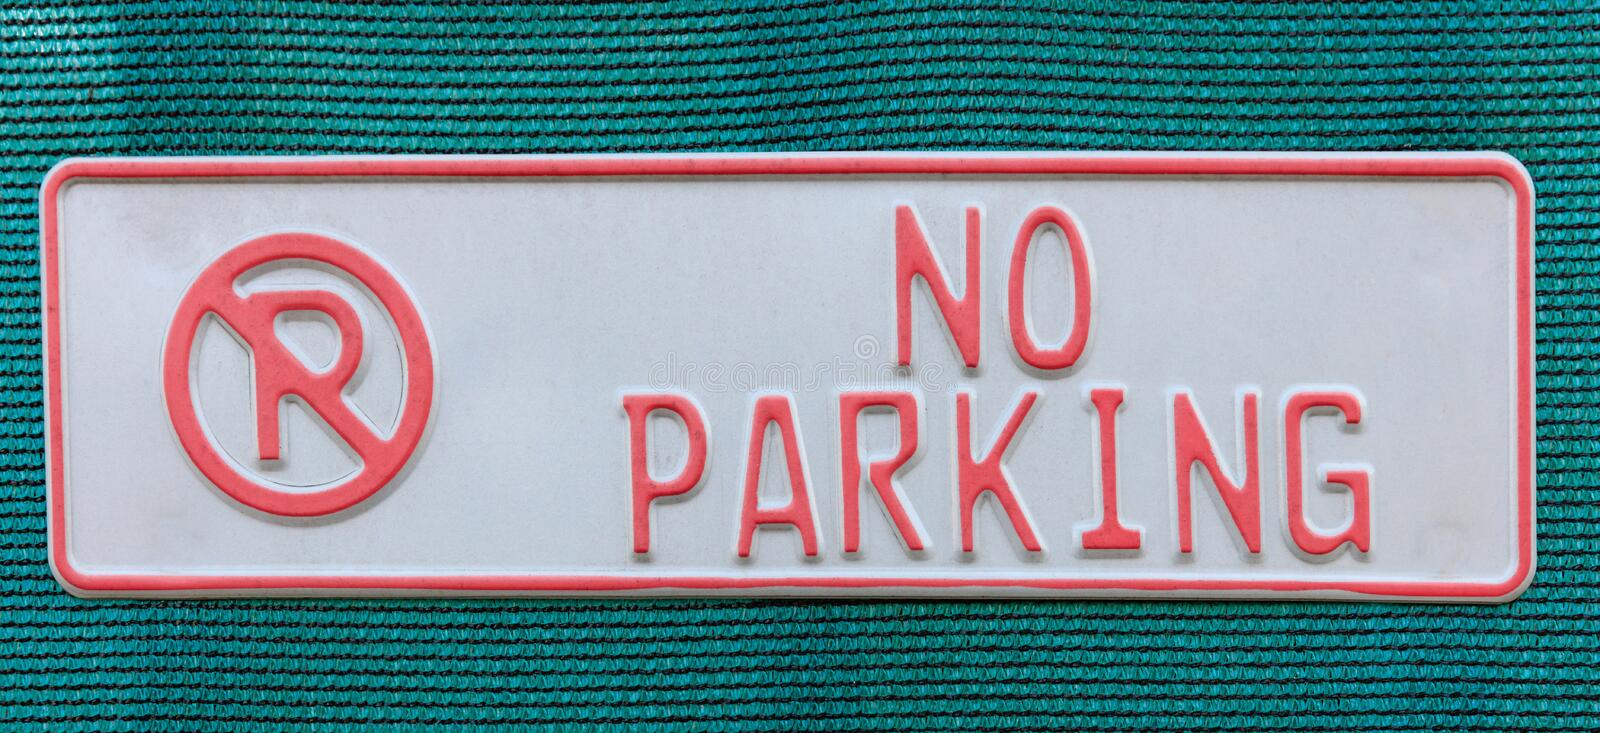 No parking sign on blue woven fabric. royalty free stock photo